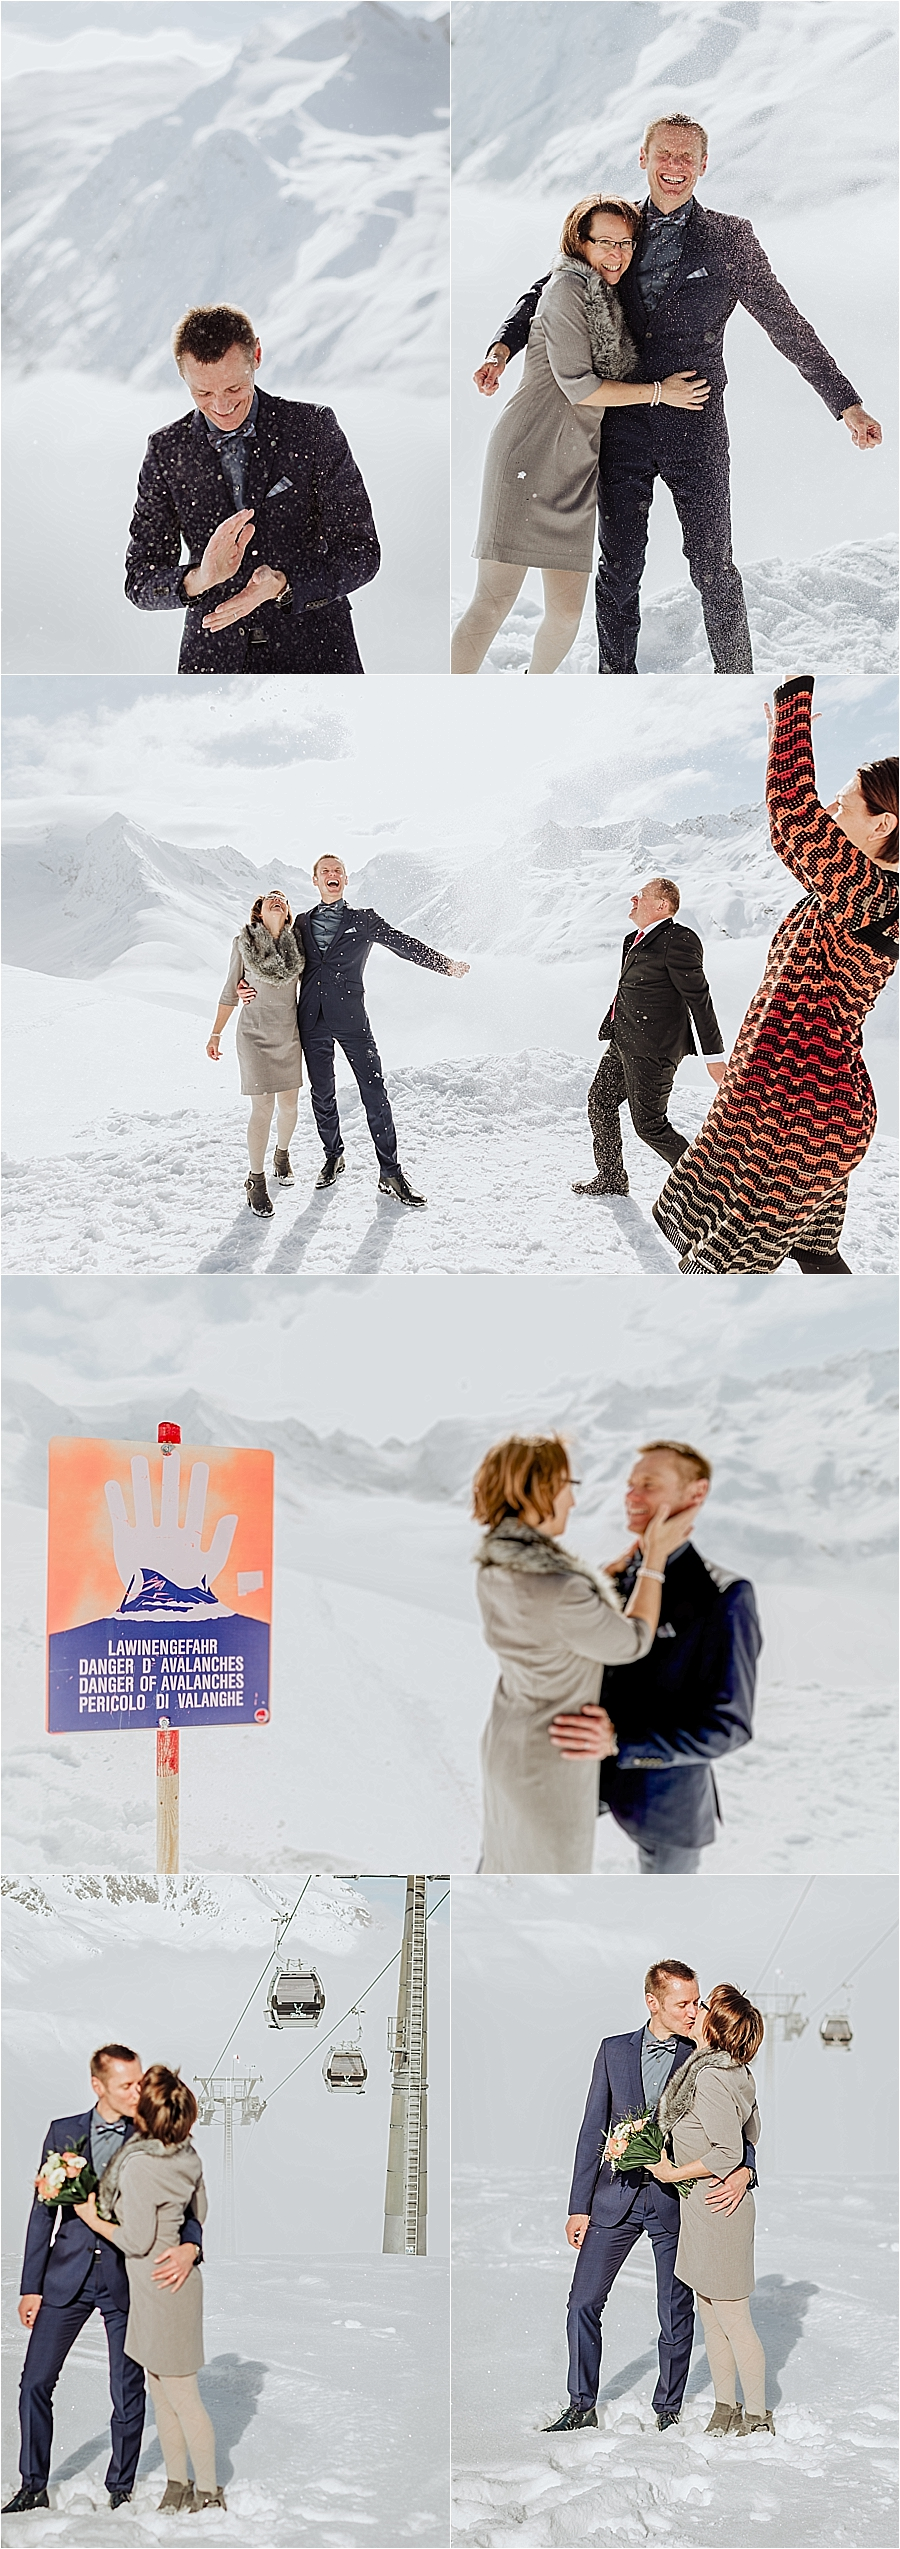 The bride & groom celebrate by throwing snow after their winter wedding in Austria by Wild Connections Photography